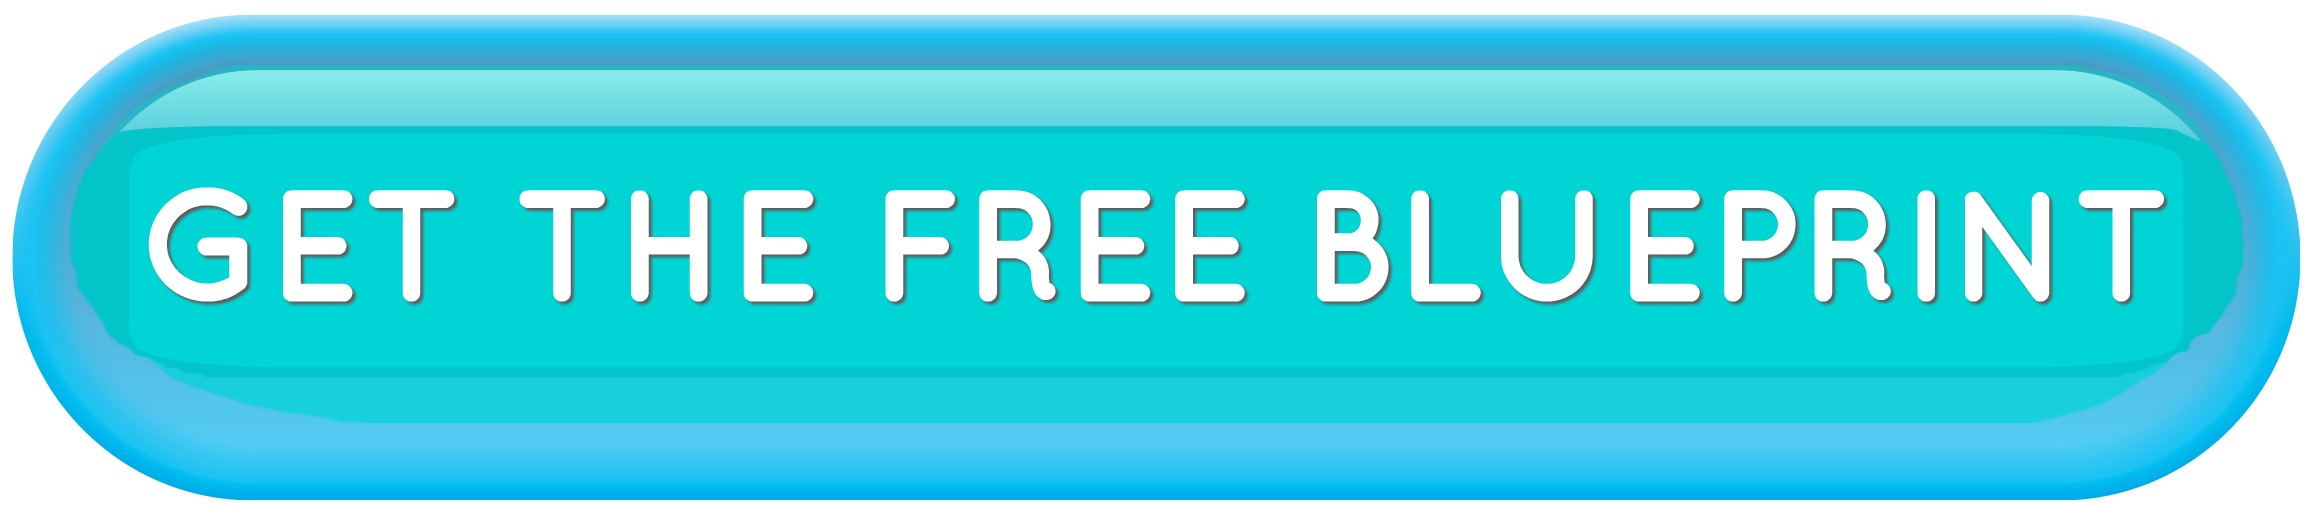 laurie burton's free blueprint